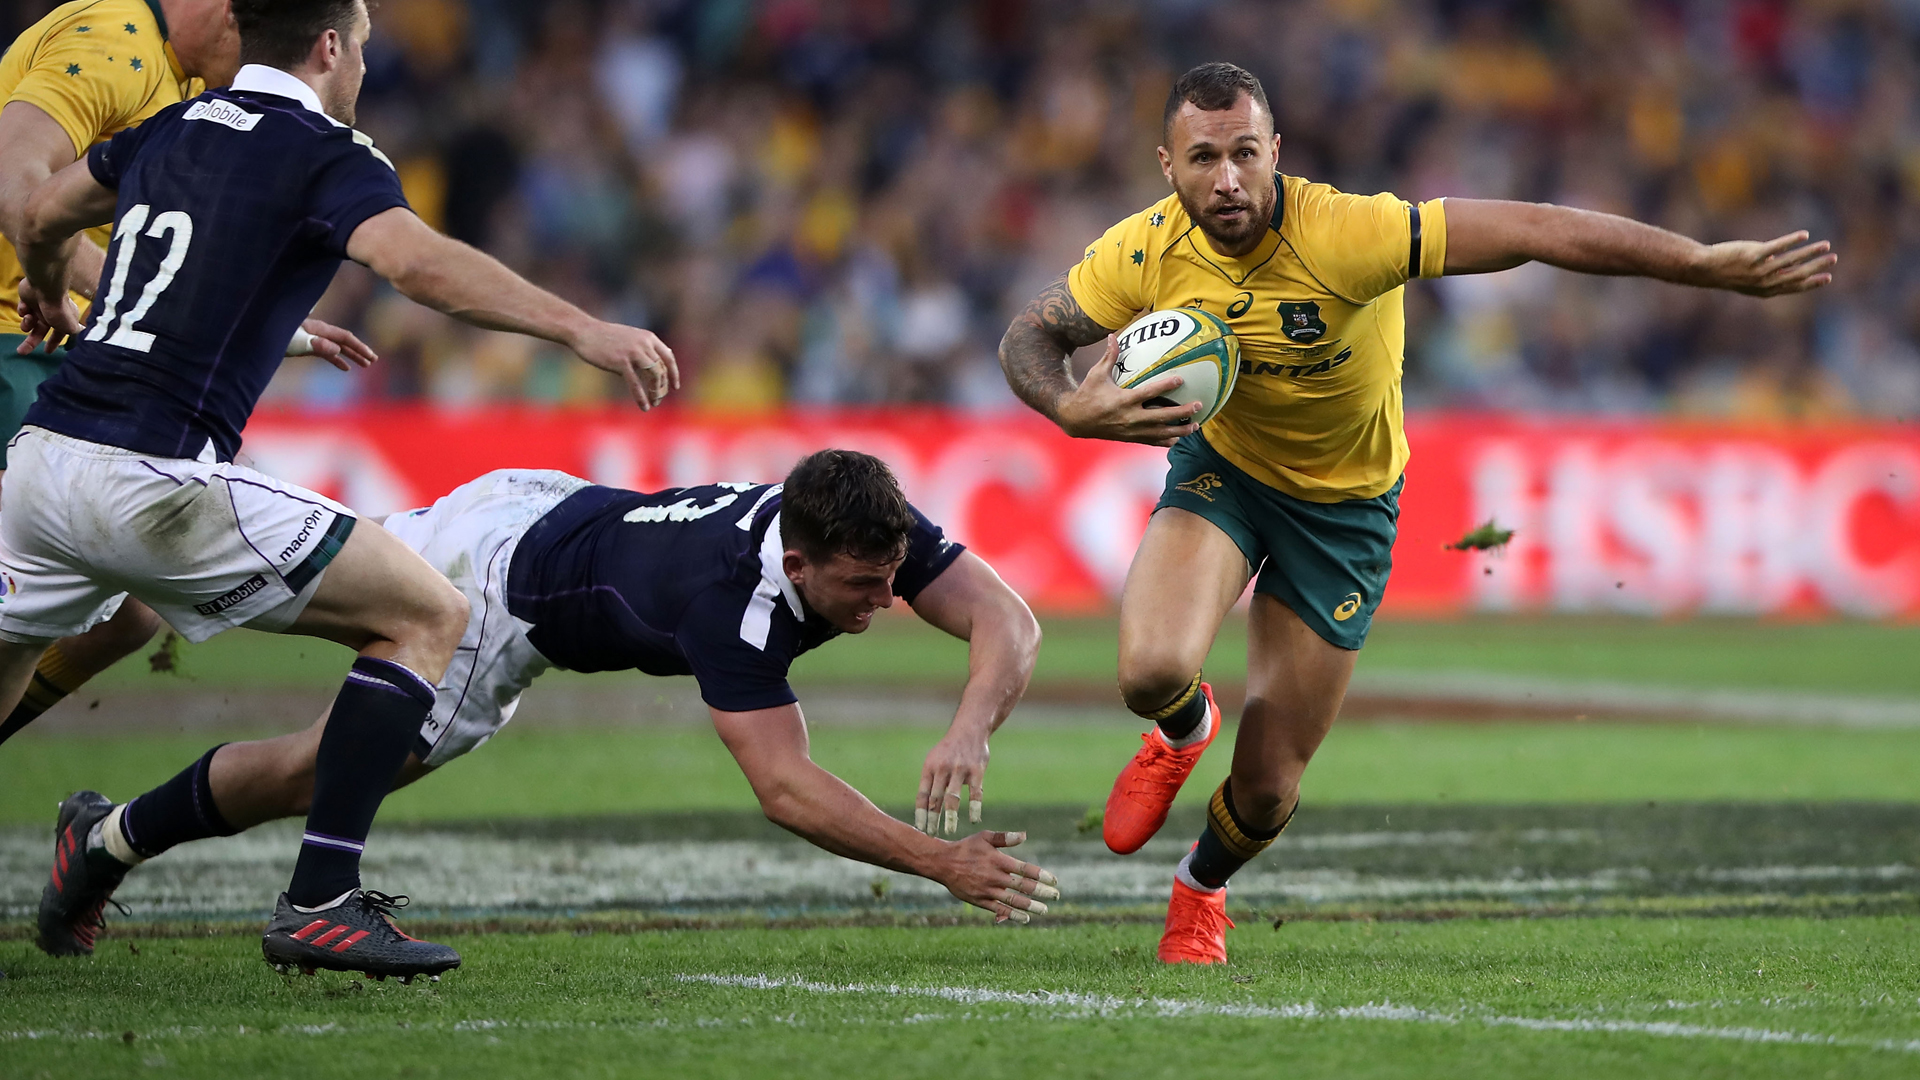 Cooper dropped from Wallabies